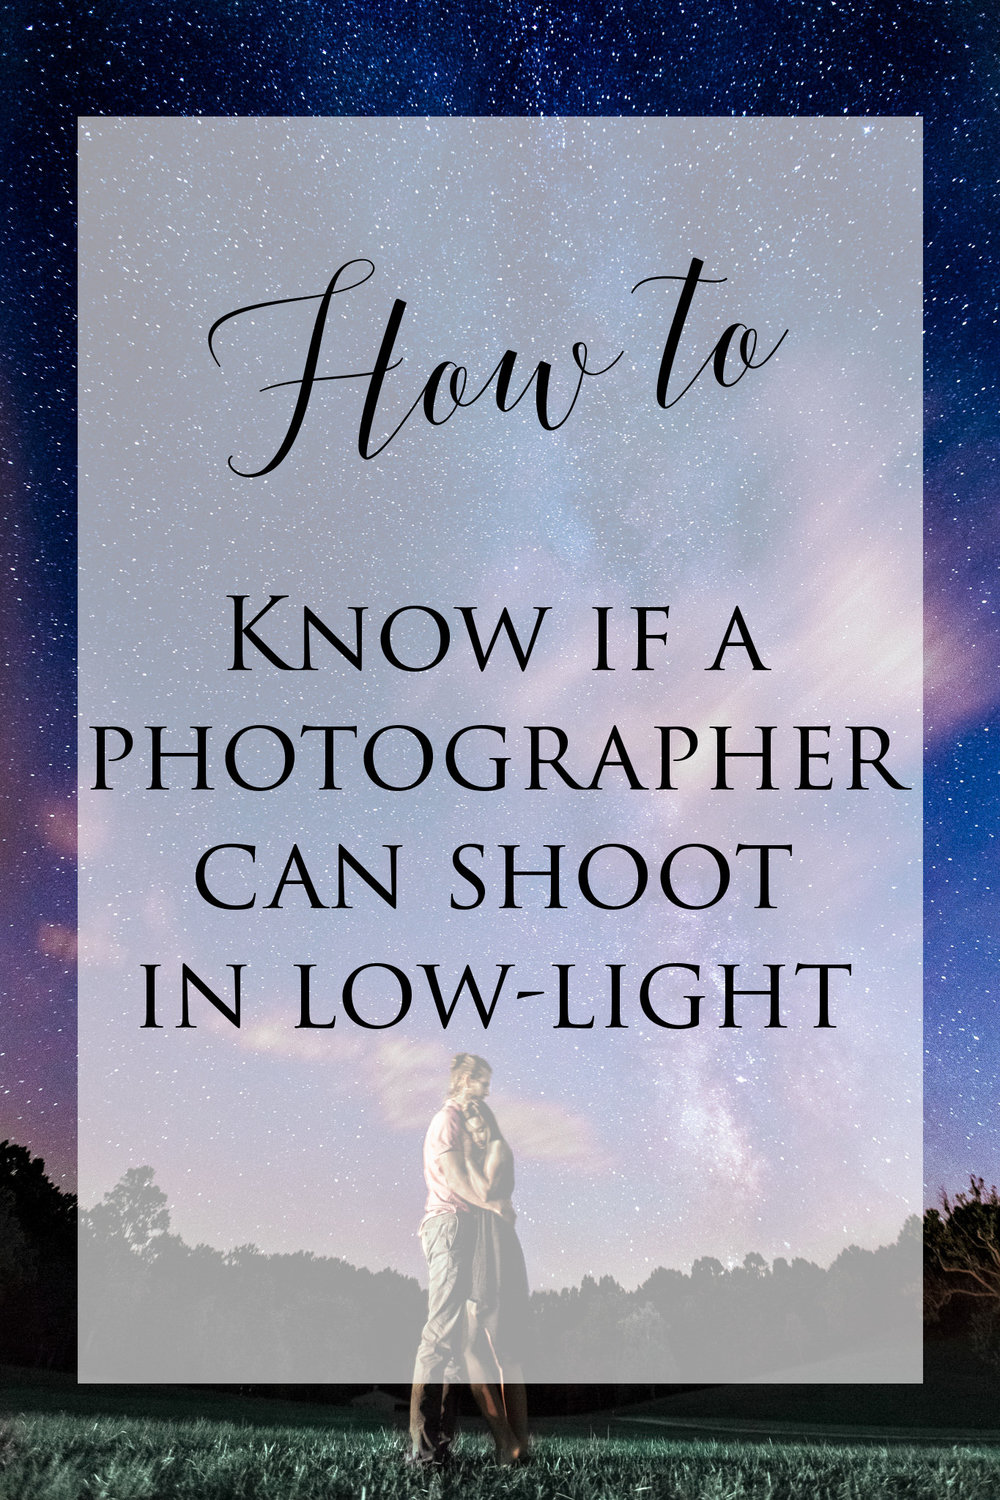 How to Know If Your Photographer Can Shoot in Low-Light - If any part of your wedding day is going to be indoors or in low-light for any reason, it's very important to hire, know, and feel confident that your wedding photographer can photograph in those darker conditions...read more